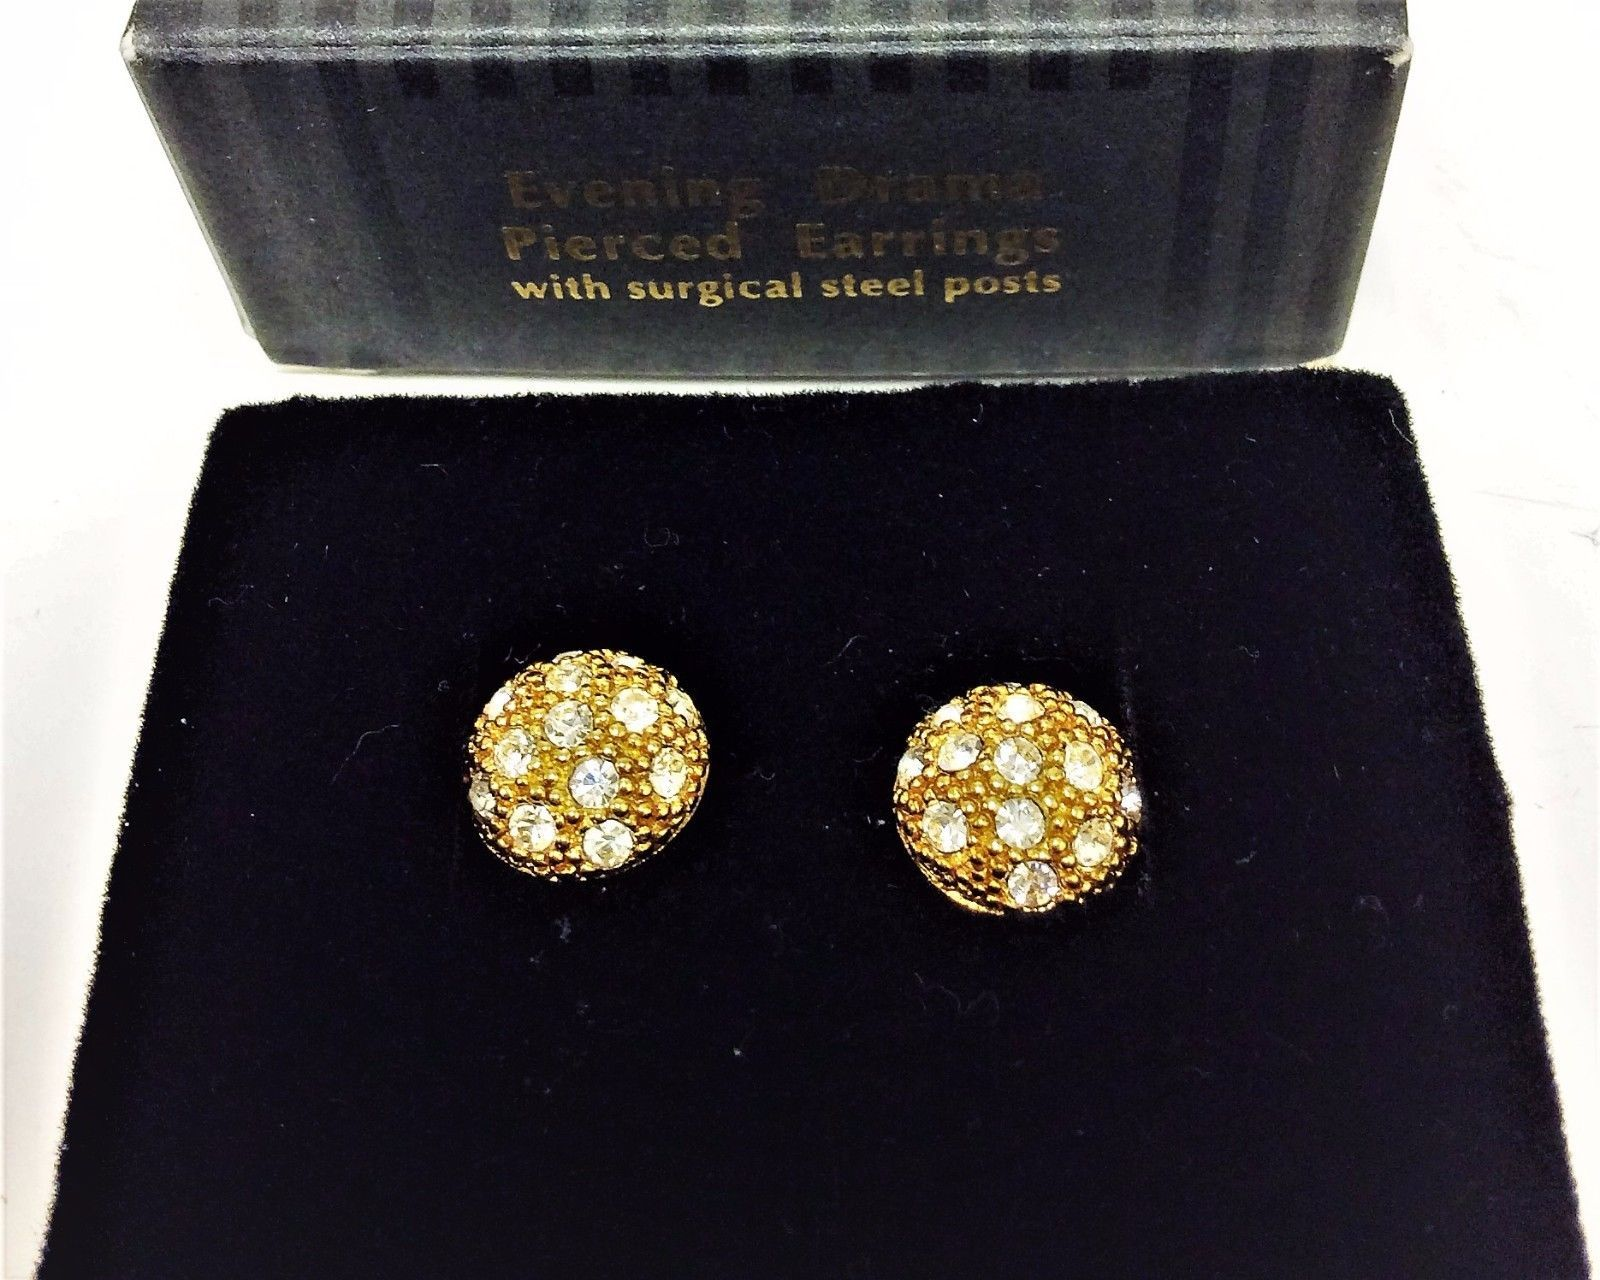 65ecf8846 57. 57. Previous. NEW AVON Evening Drama Pierced Earrings w/ Surgical Steel Post  Gold Tone Earring · NEW AVON Evening Drama ...